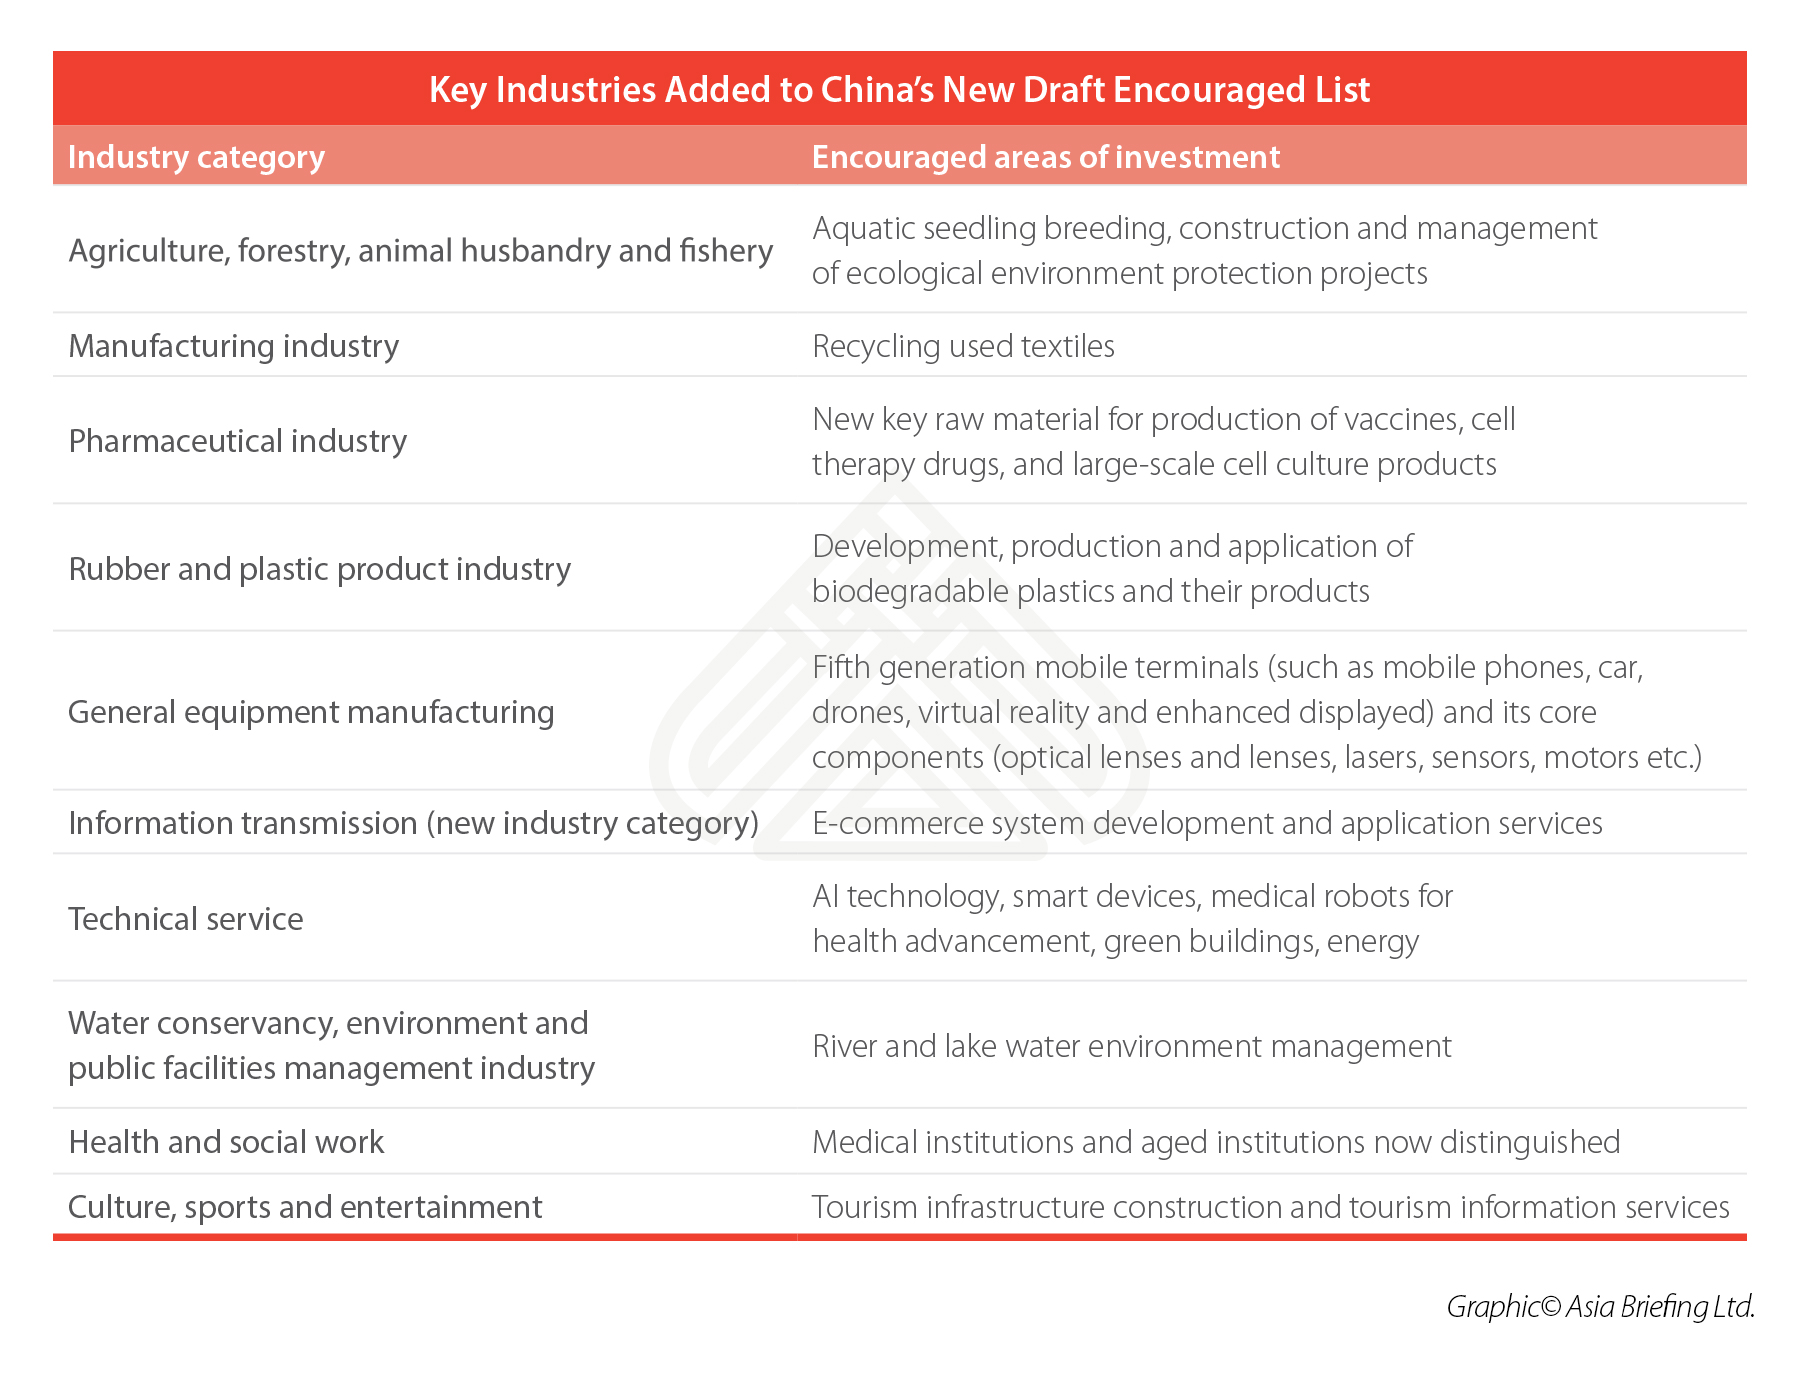 China's Industries Open to Foreign Investment: 2019 Draft